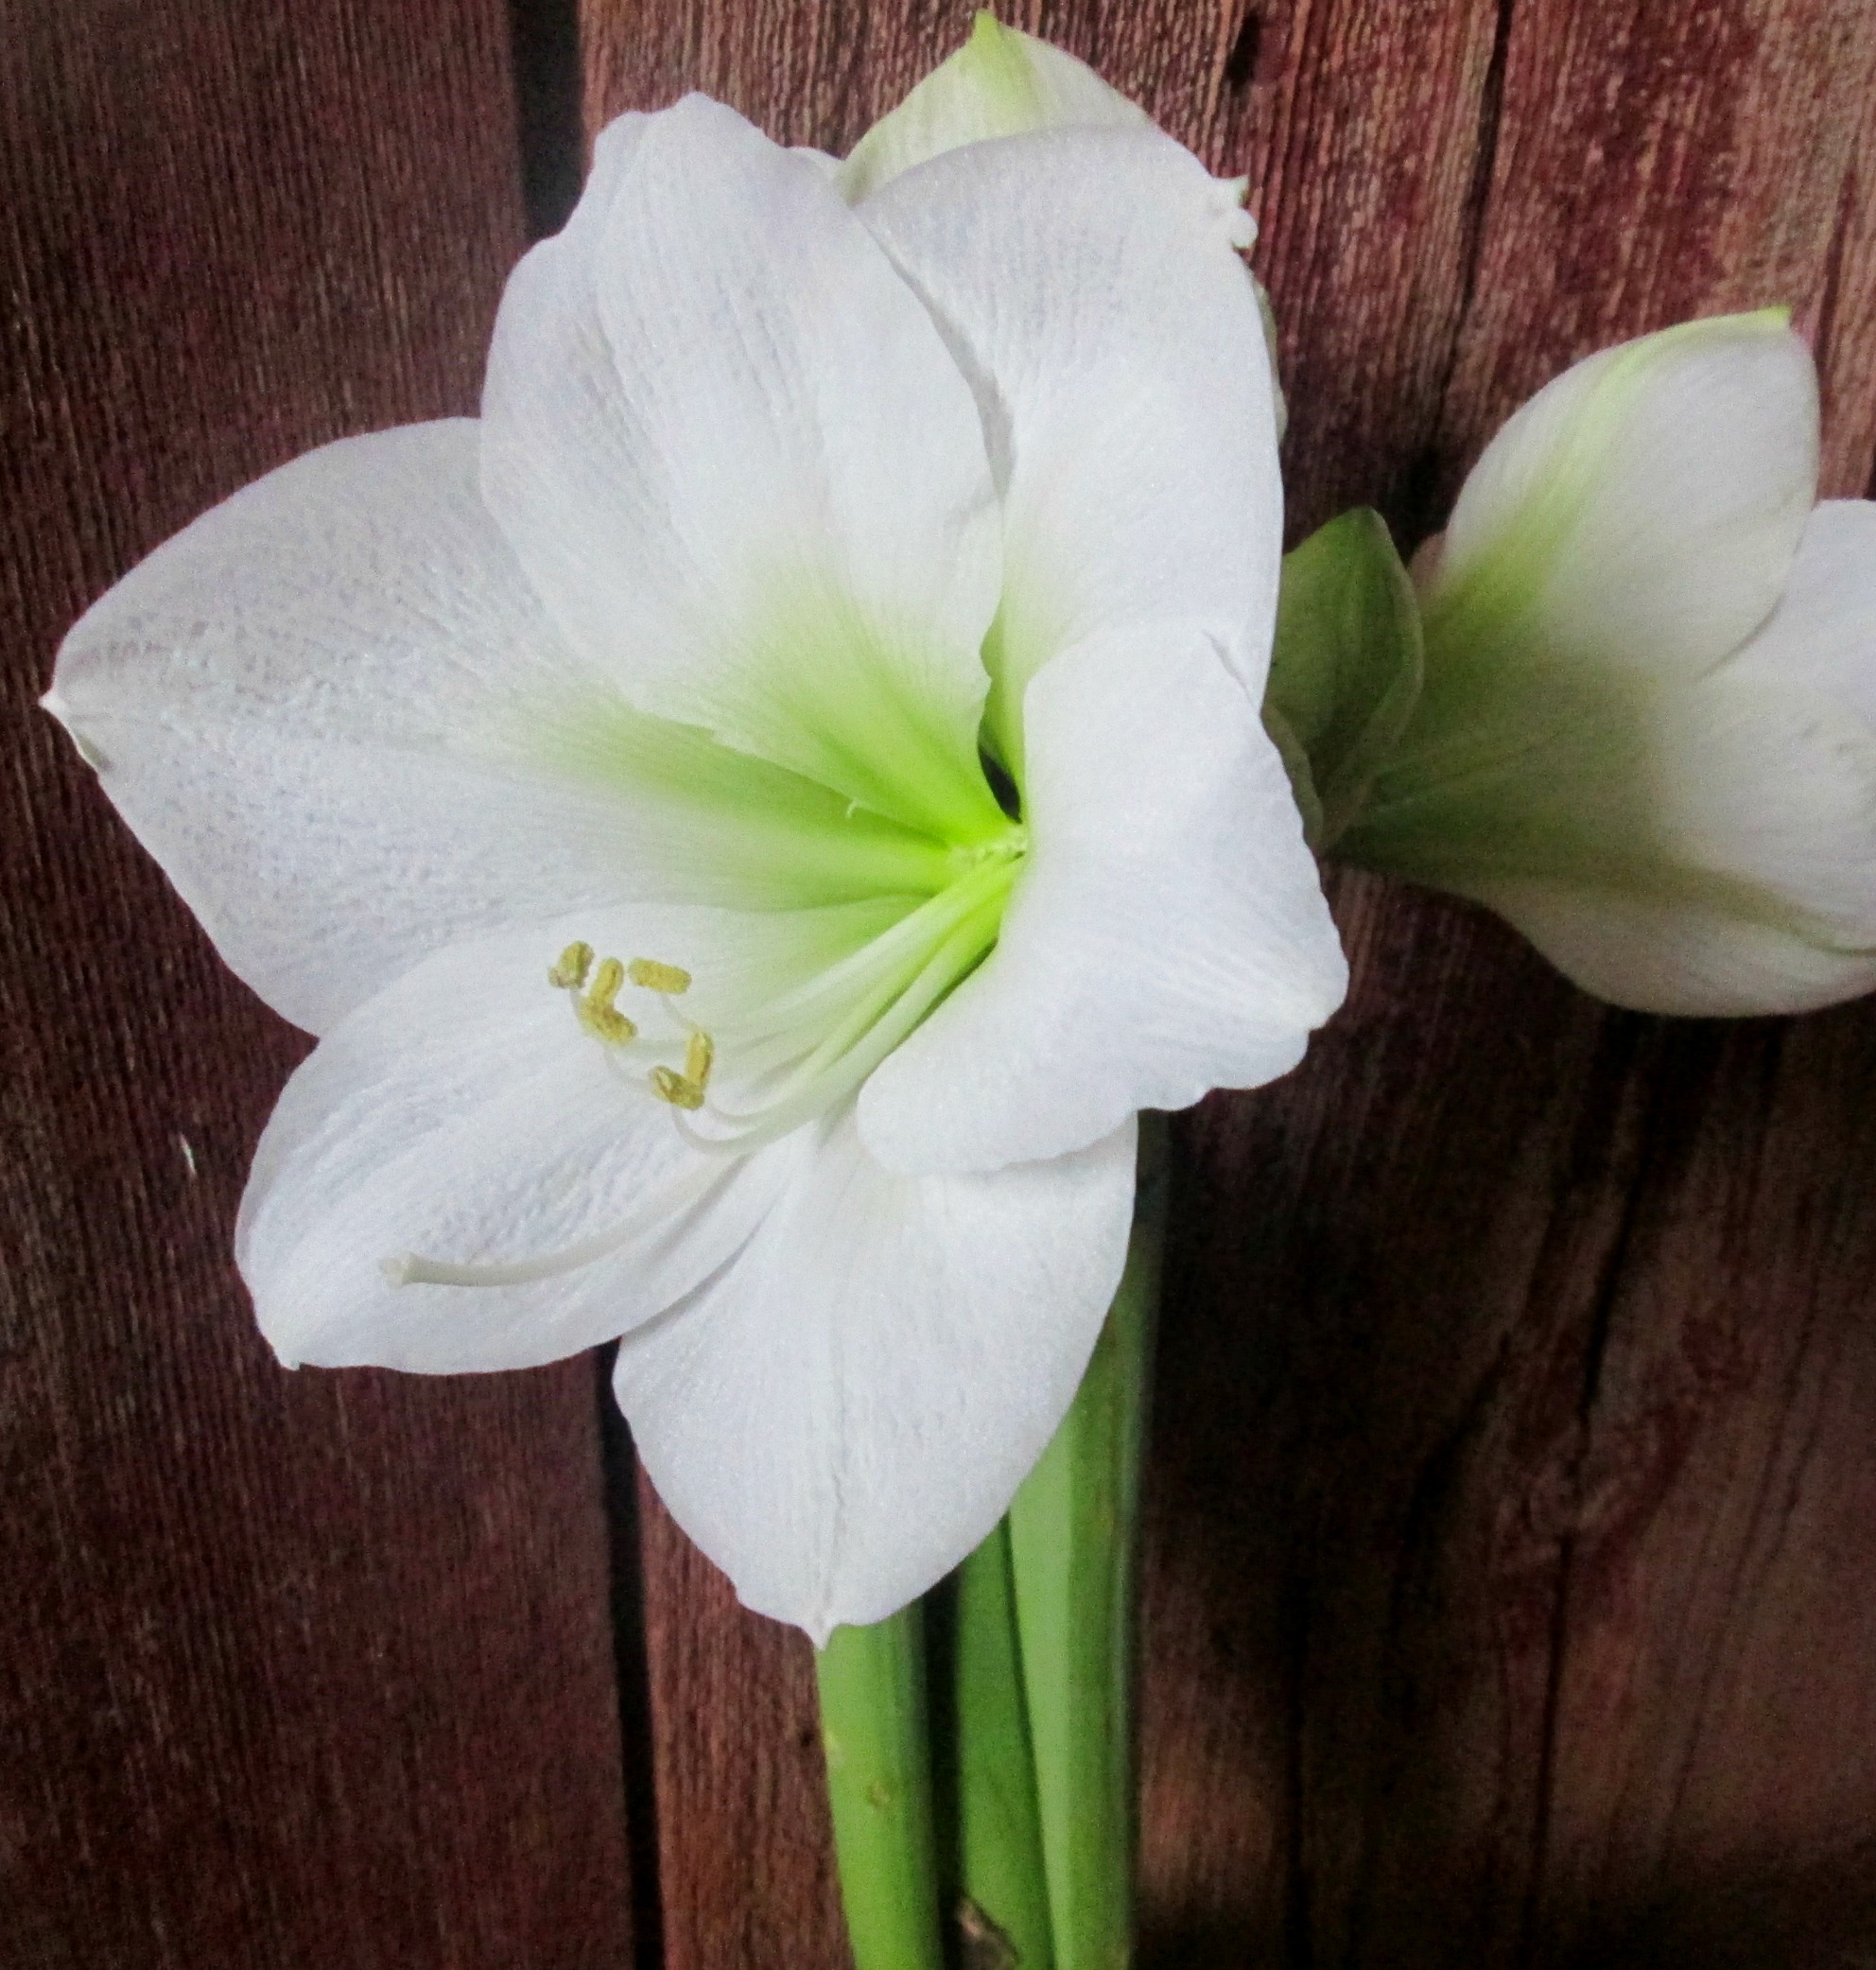 Saving your amaryllis tips for winter linden hill for Amaryllis bulbe conservation